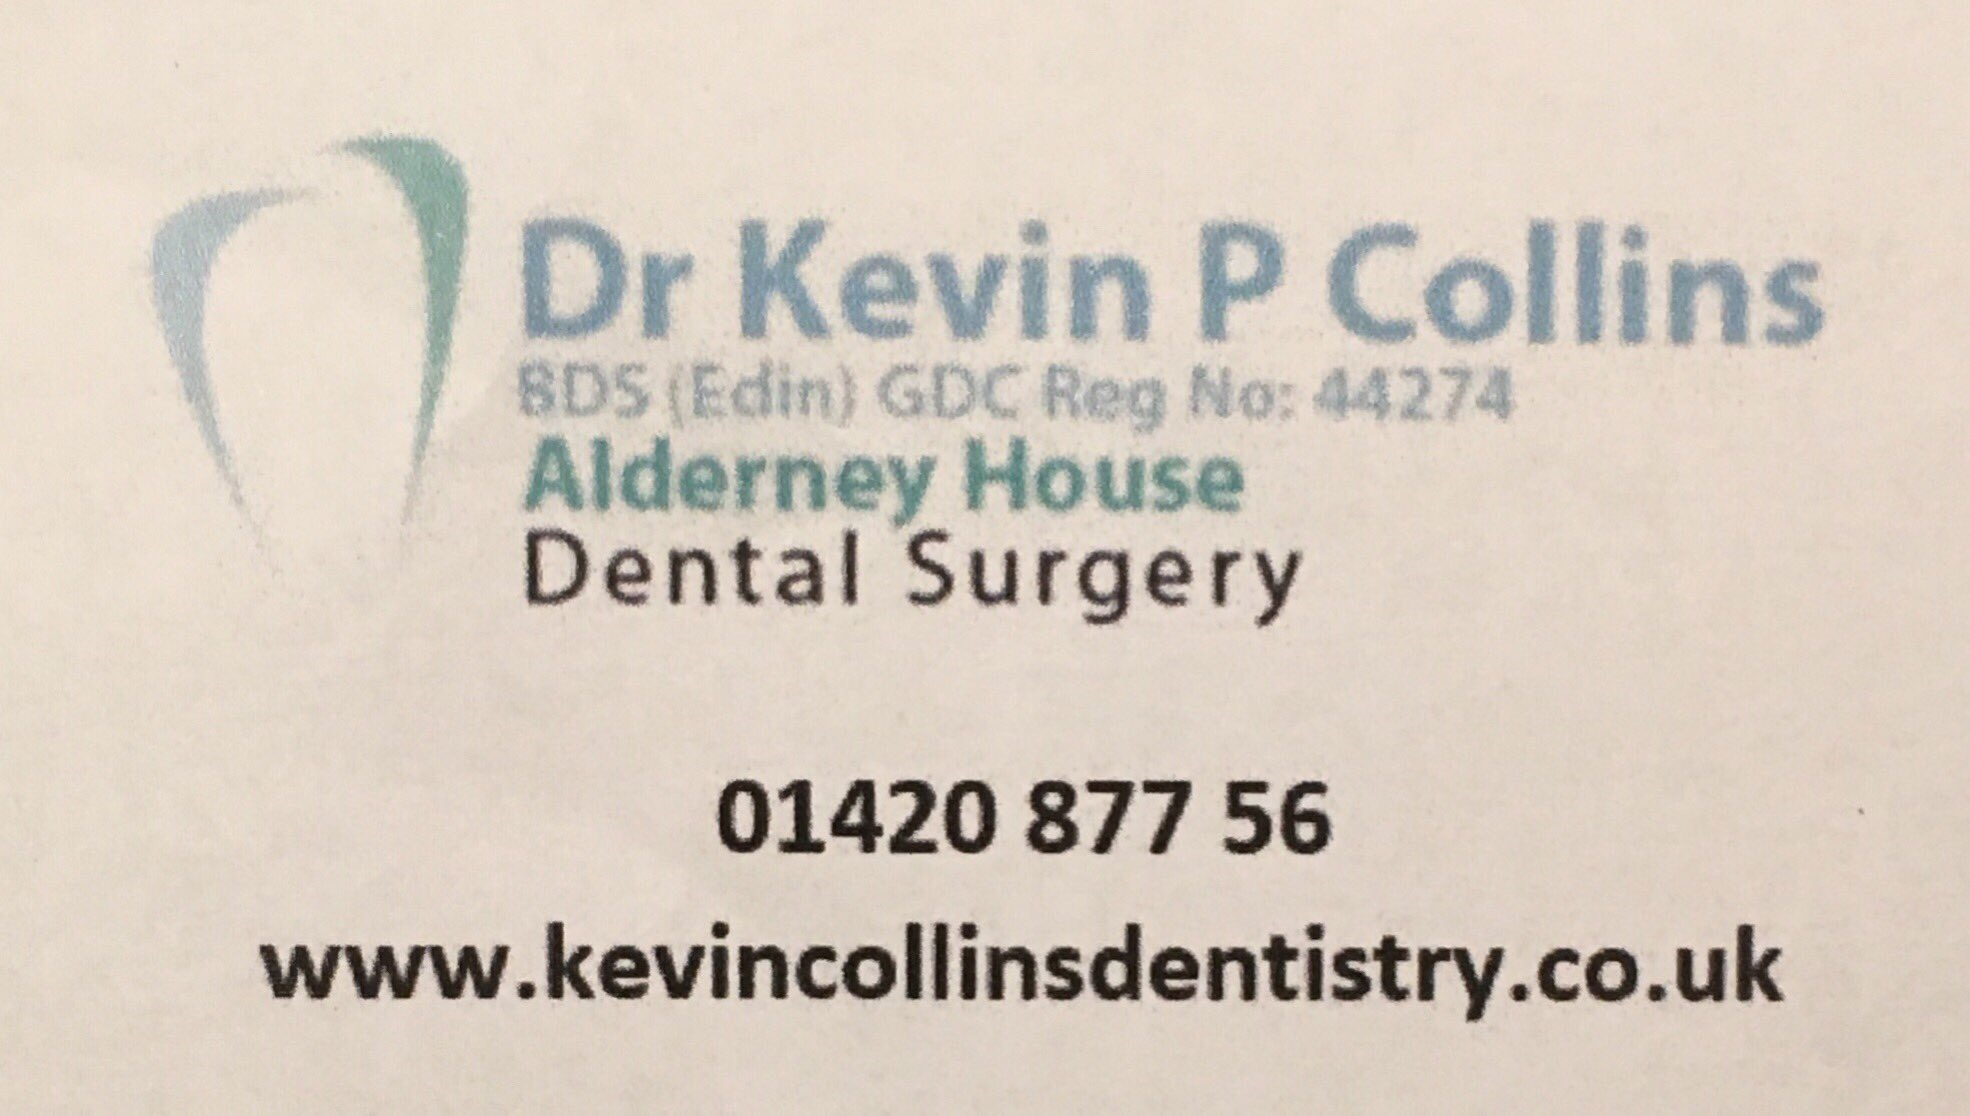 Kevin Collins Dentistry